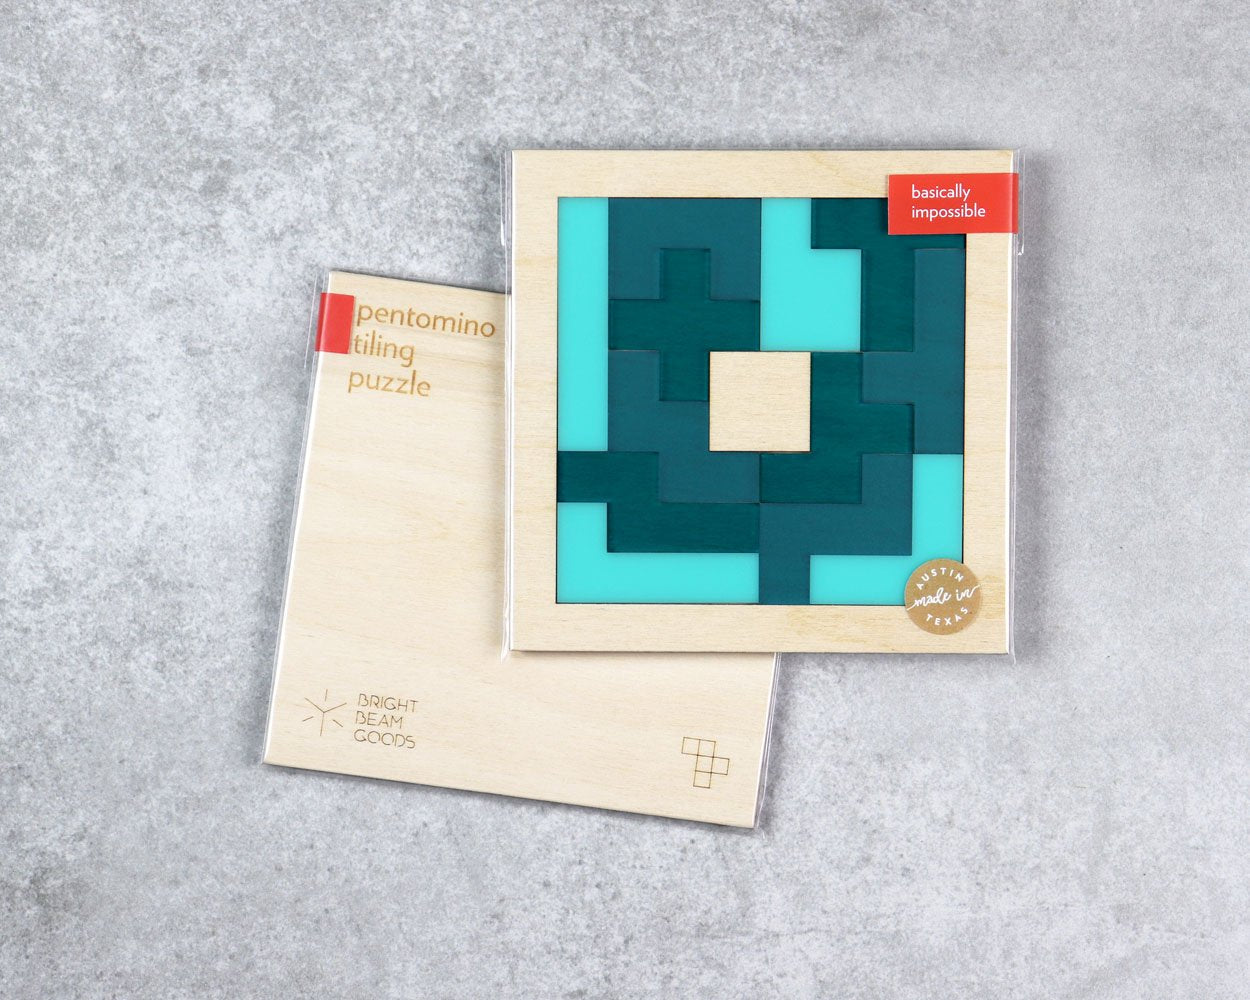 Sea square pentomino puzzle in packaging